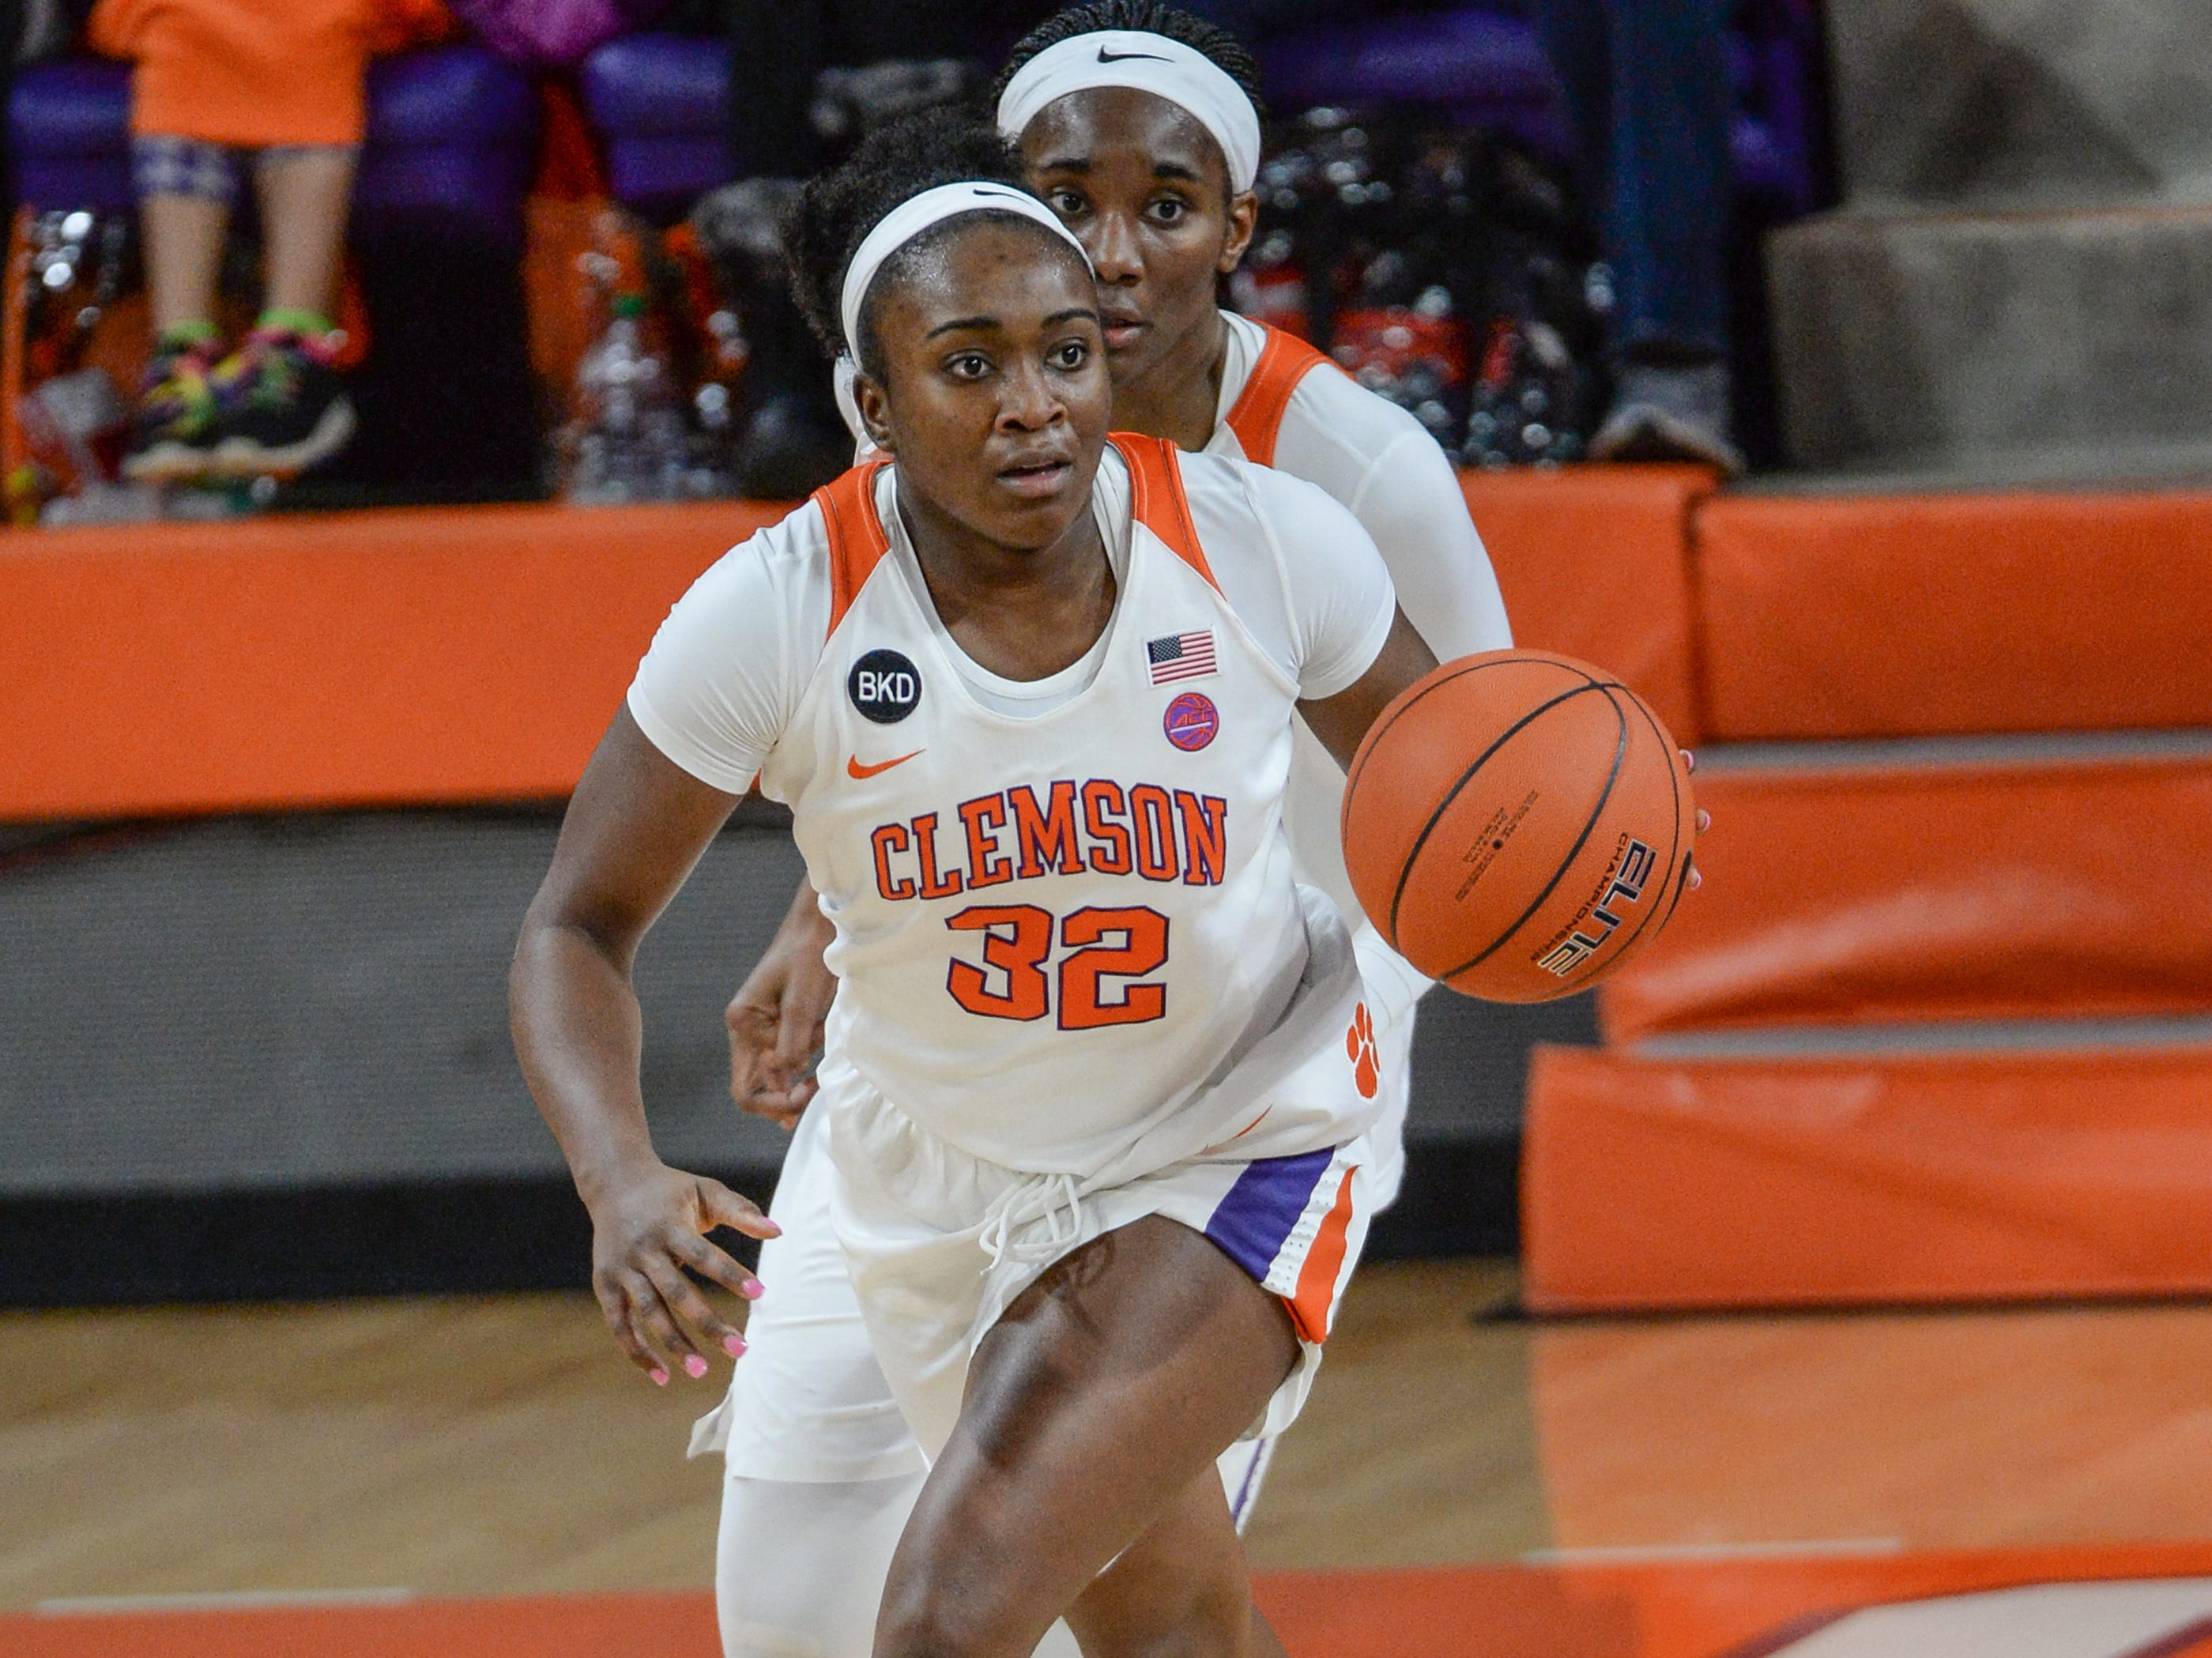 Clemson guard Chyna Cotton(32) dribbles up court during the second quarter of the game with Georgia Tech at Littlejohn Coliseum in Clemson Thursday, January 17, 2019.